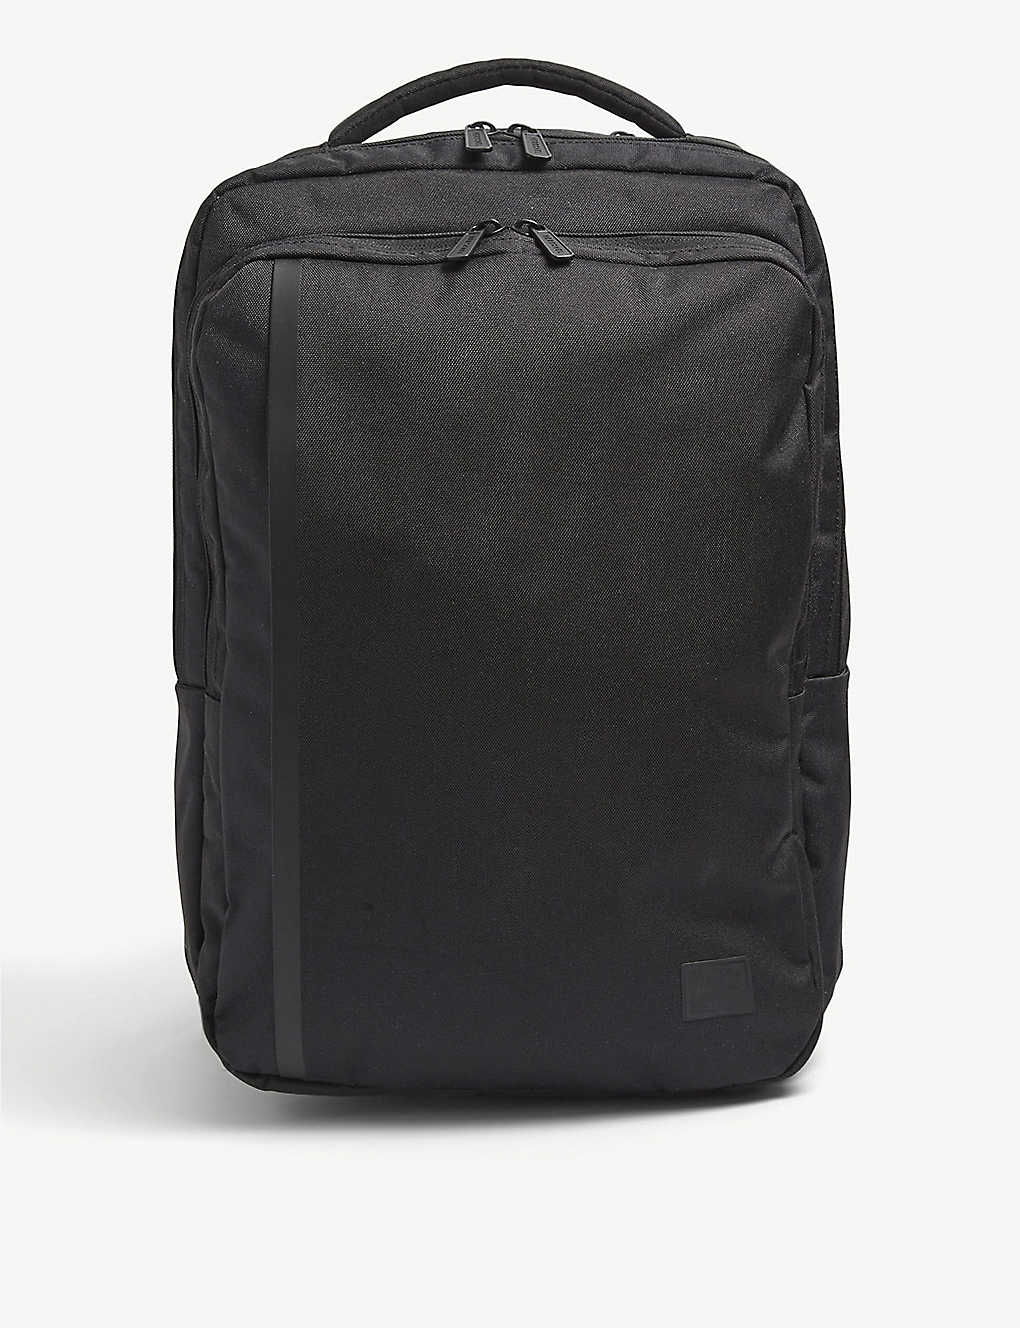 HERSCHEL SUPPLY CO: Travel nylon backpack